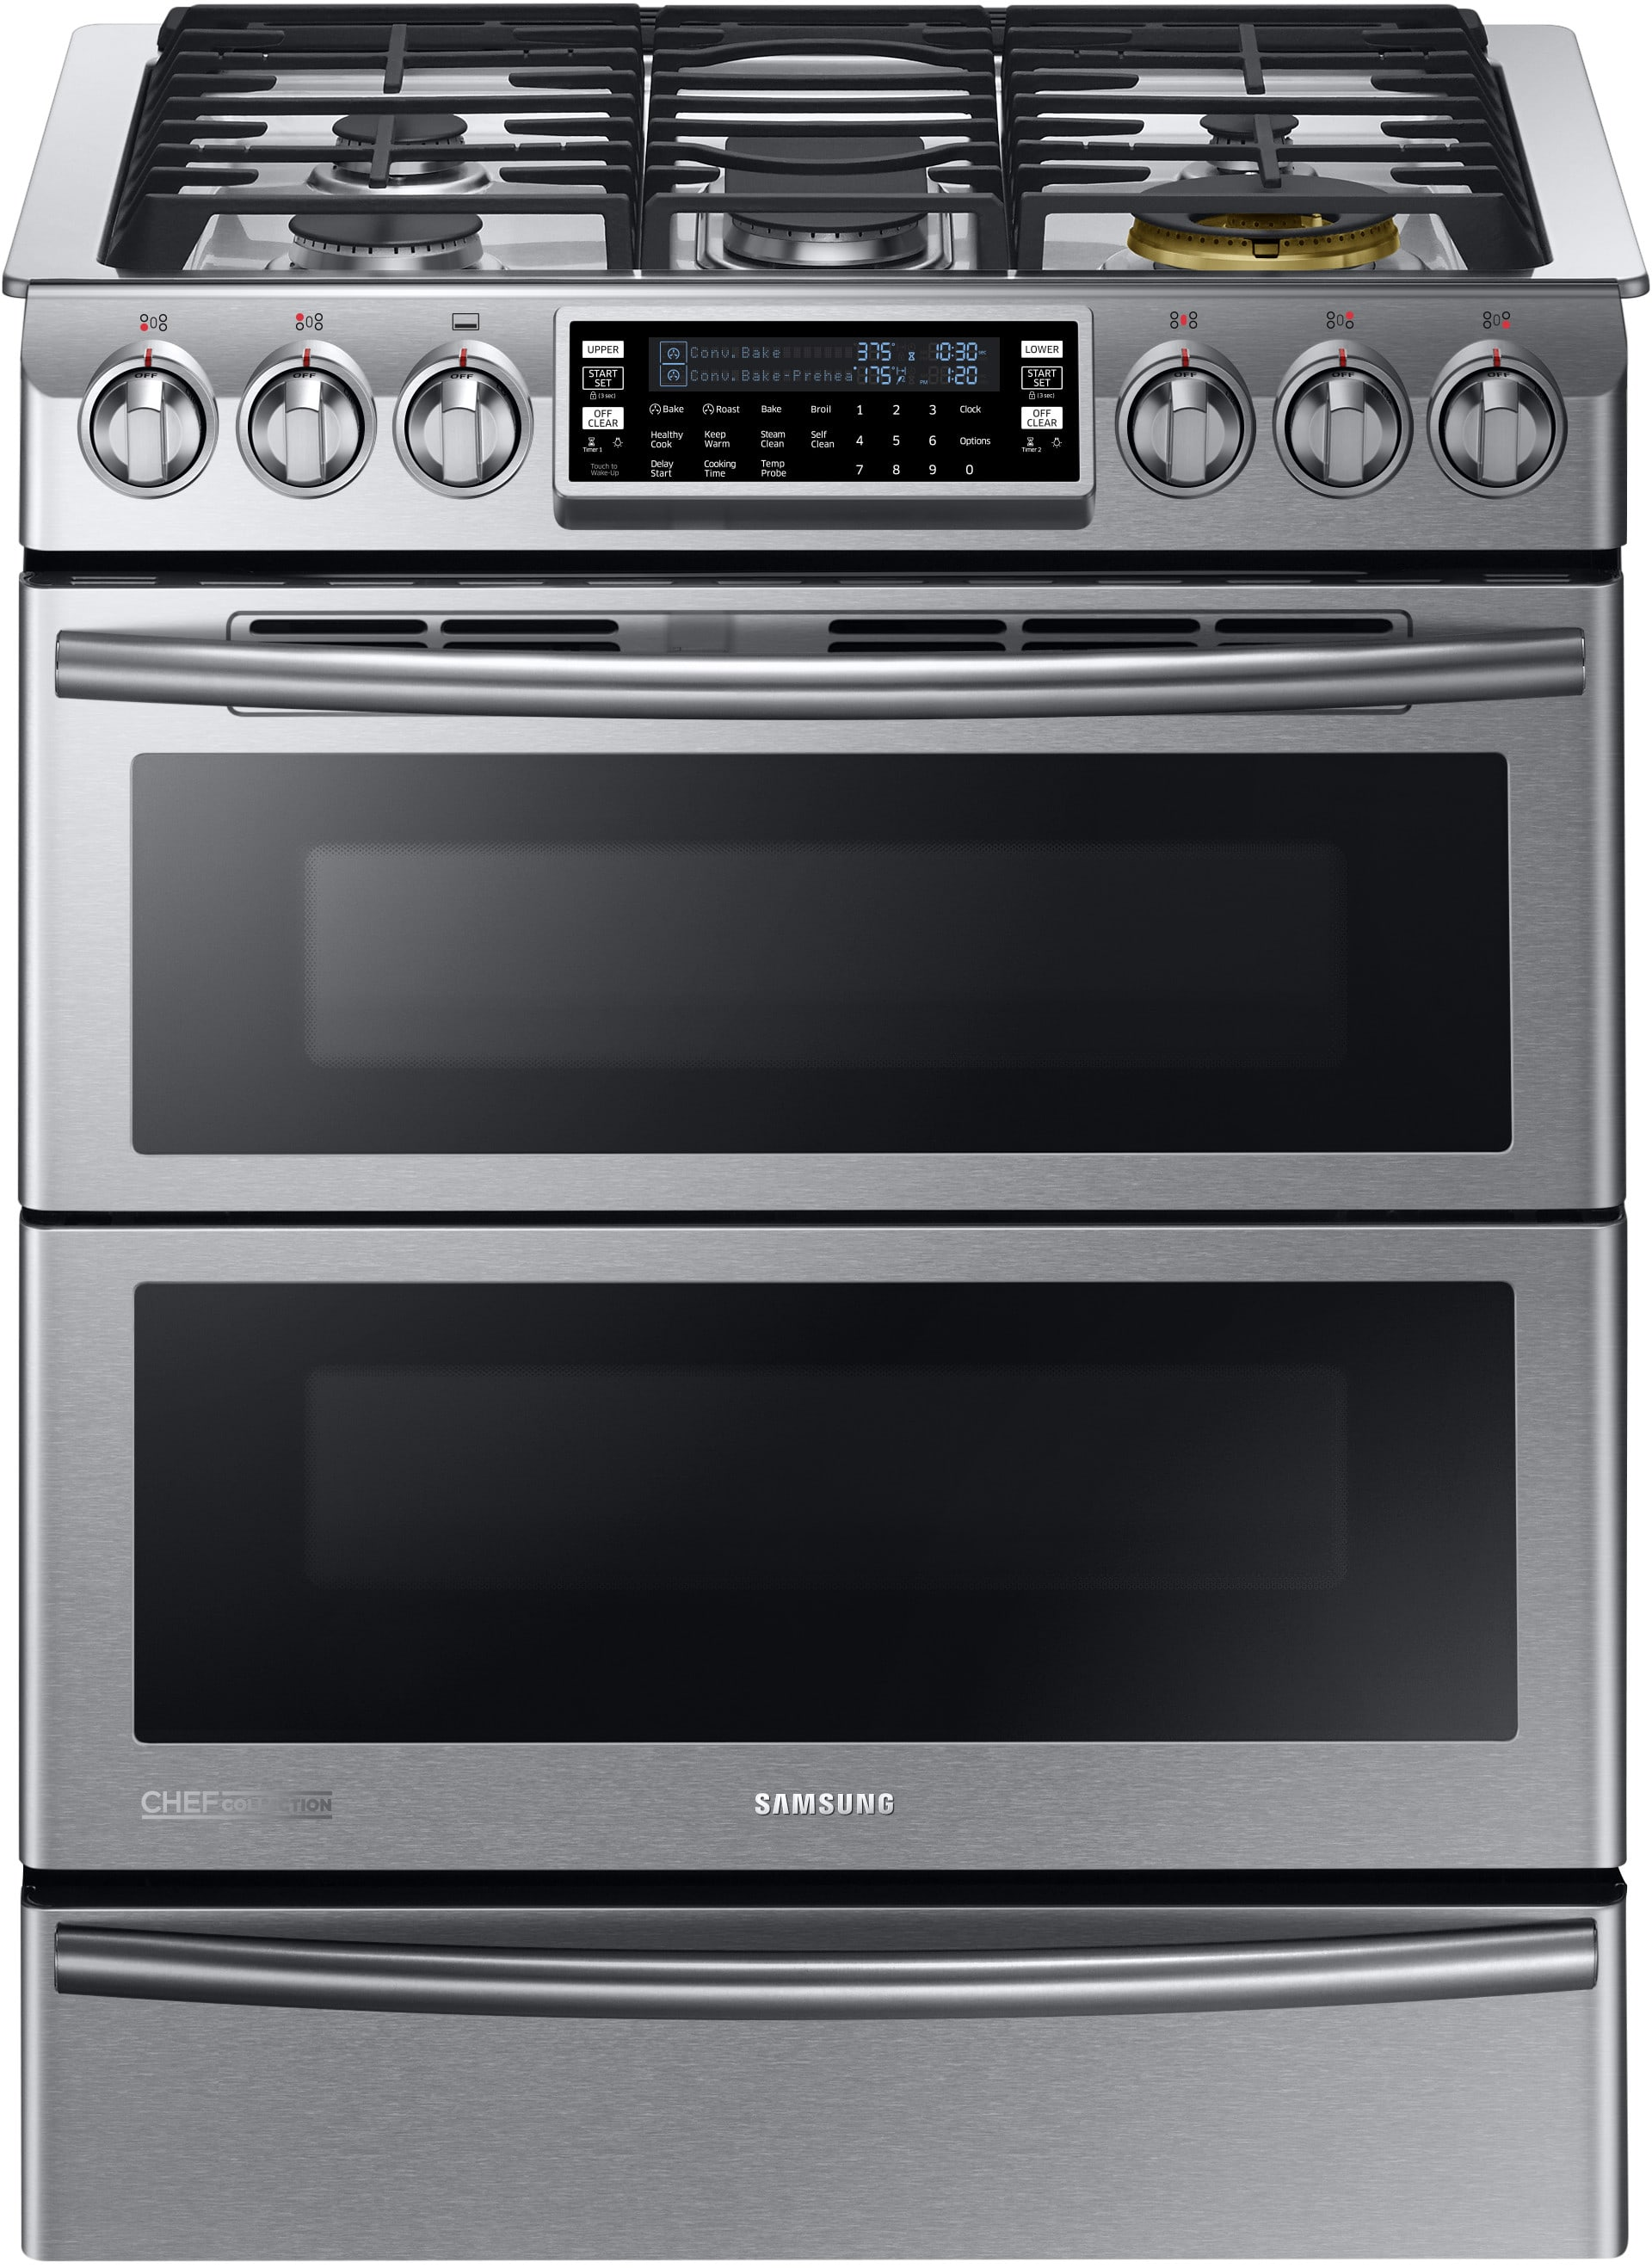 Samsung NY58J9850WS 30 Inch Slide-in Dual Fuel Range with ...